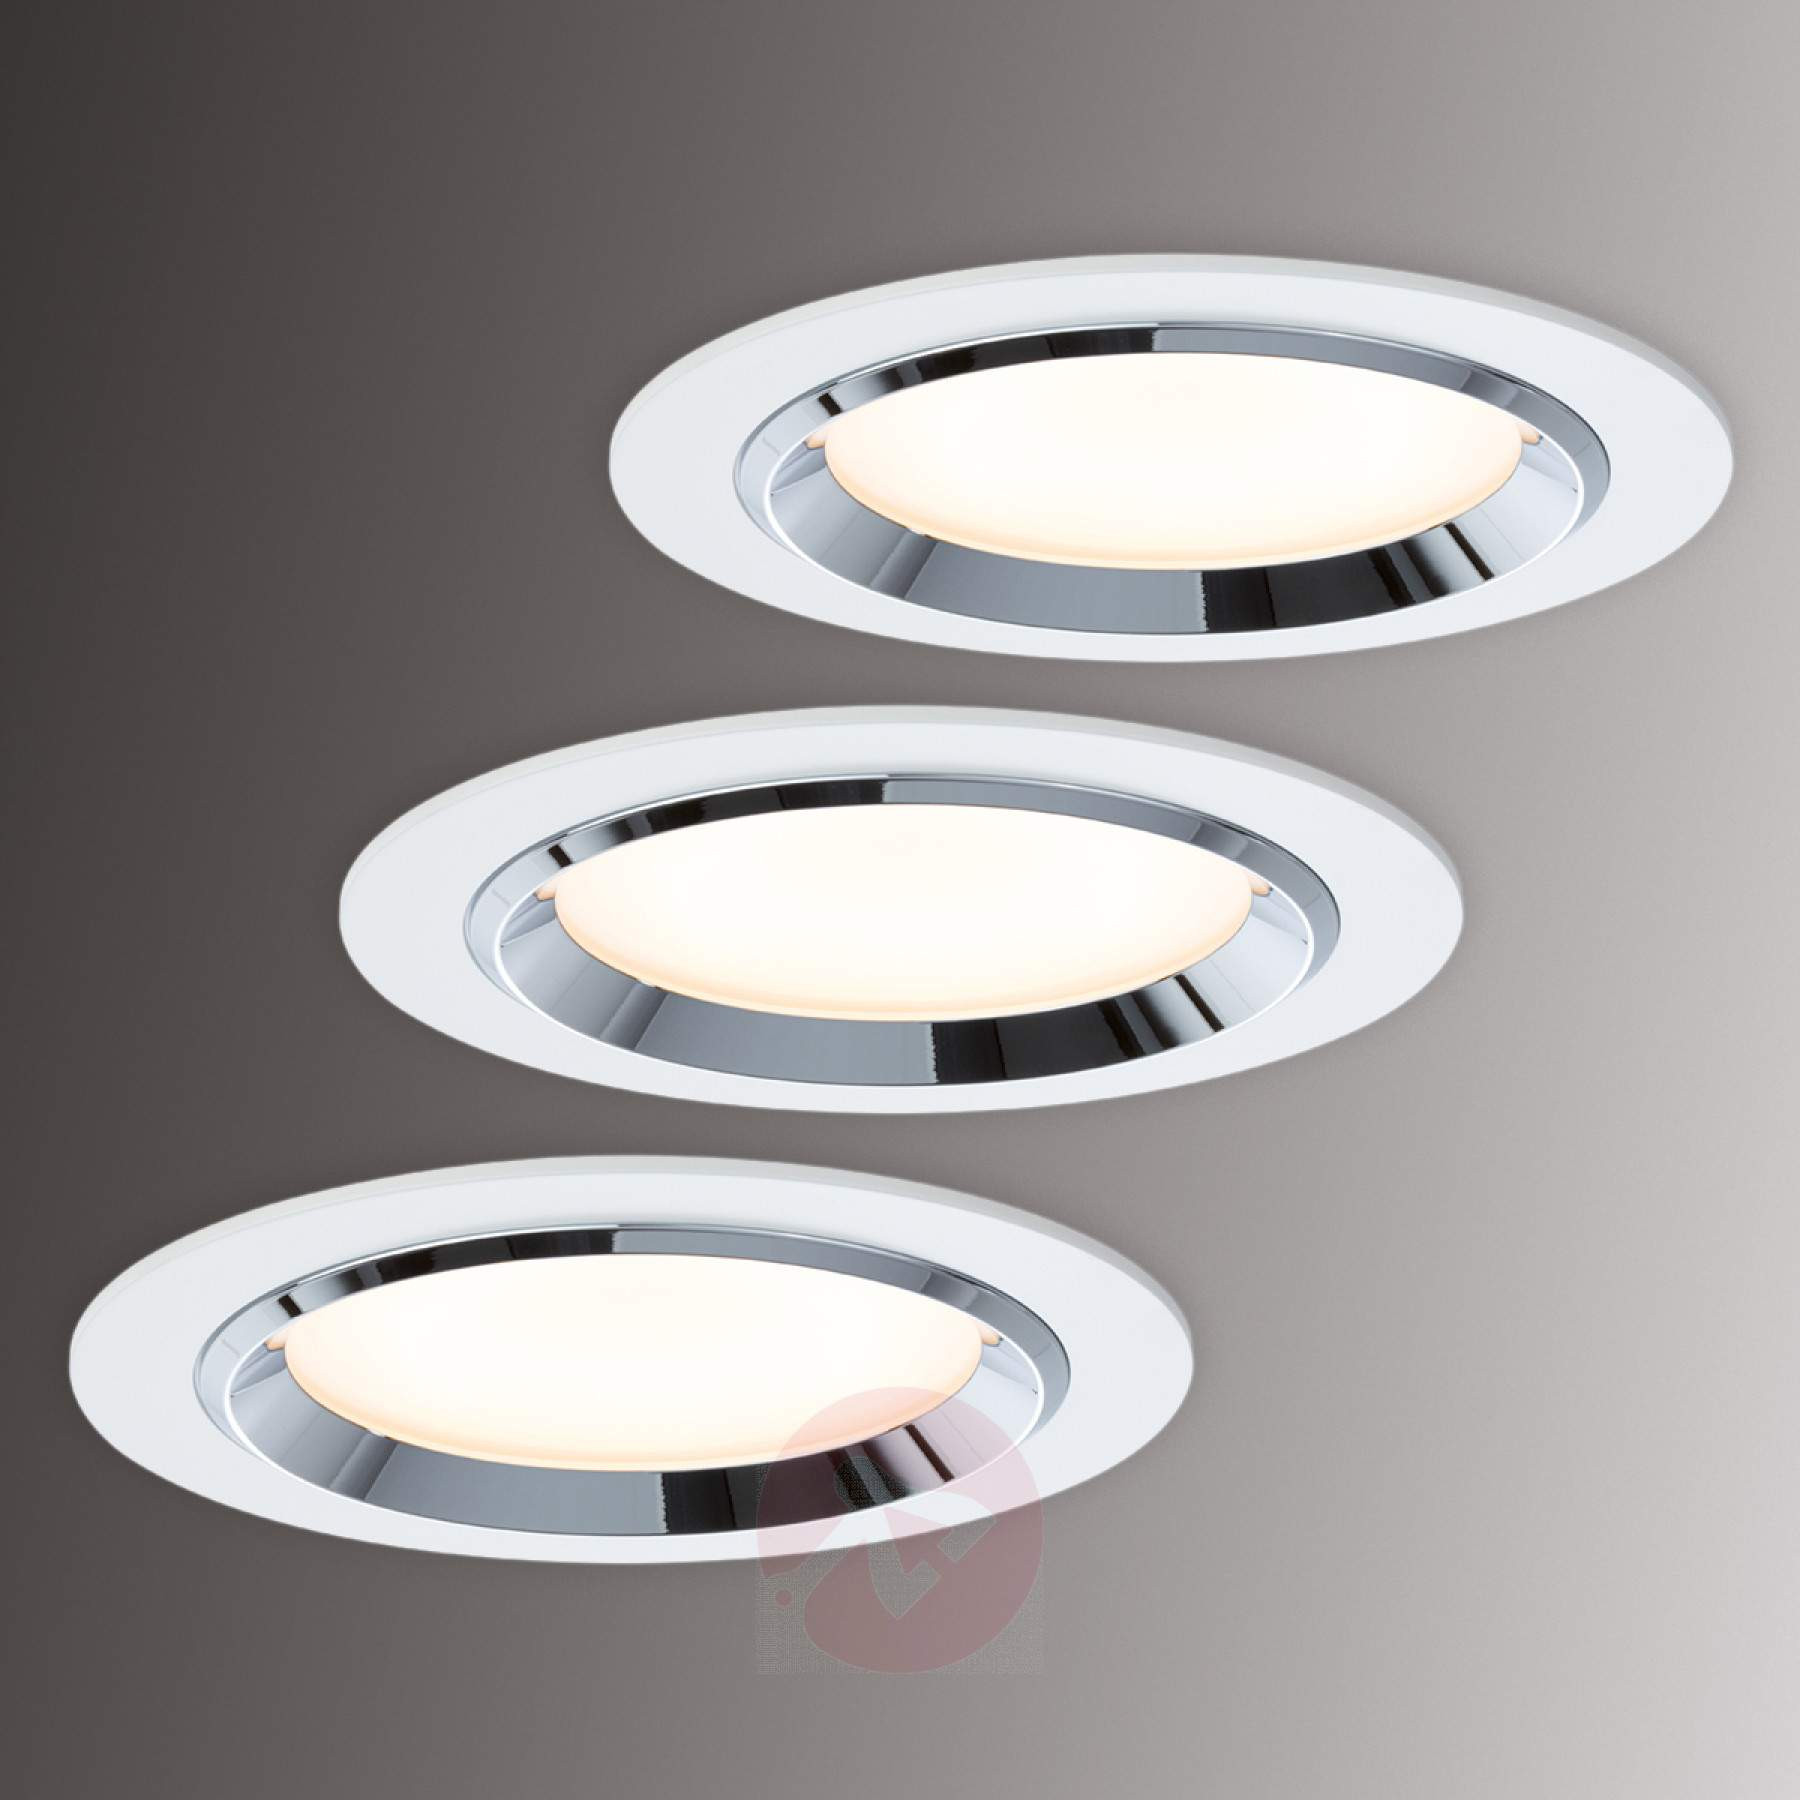 Focos Led Empotrables Extraplanos Perfecto Pra Set De 3 Focos Led Empotrables Premium Line Dot Of Focos Led Empotrables Extraplanos Brillante Downlights Led Extraplanos • Prar Line • Desde 4 29€